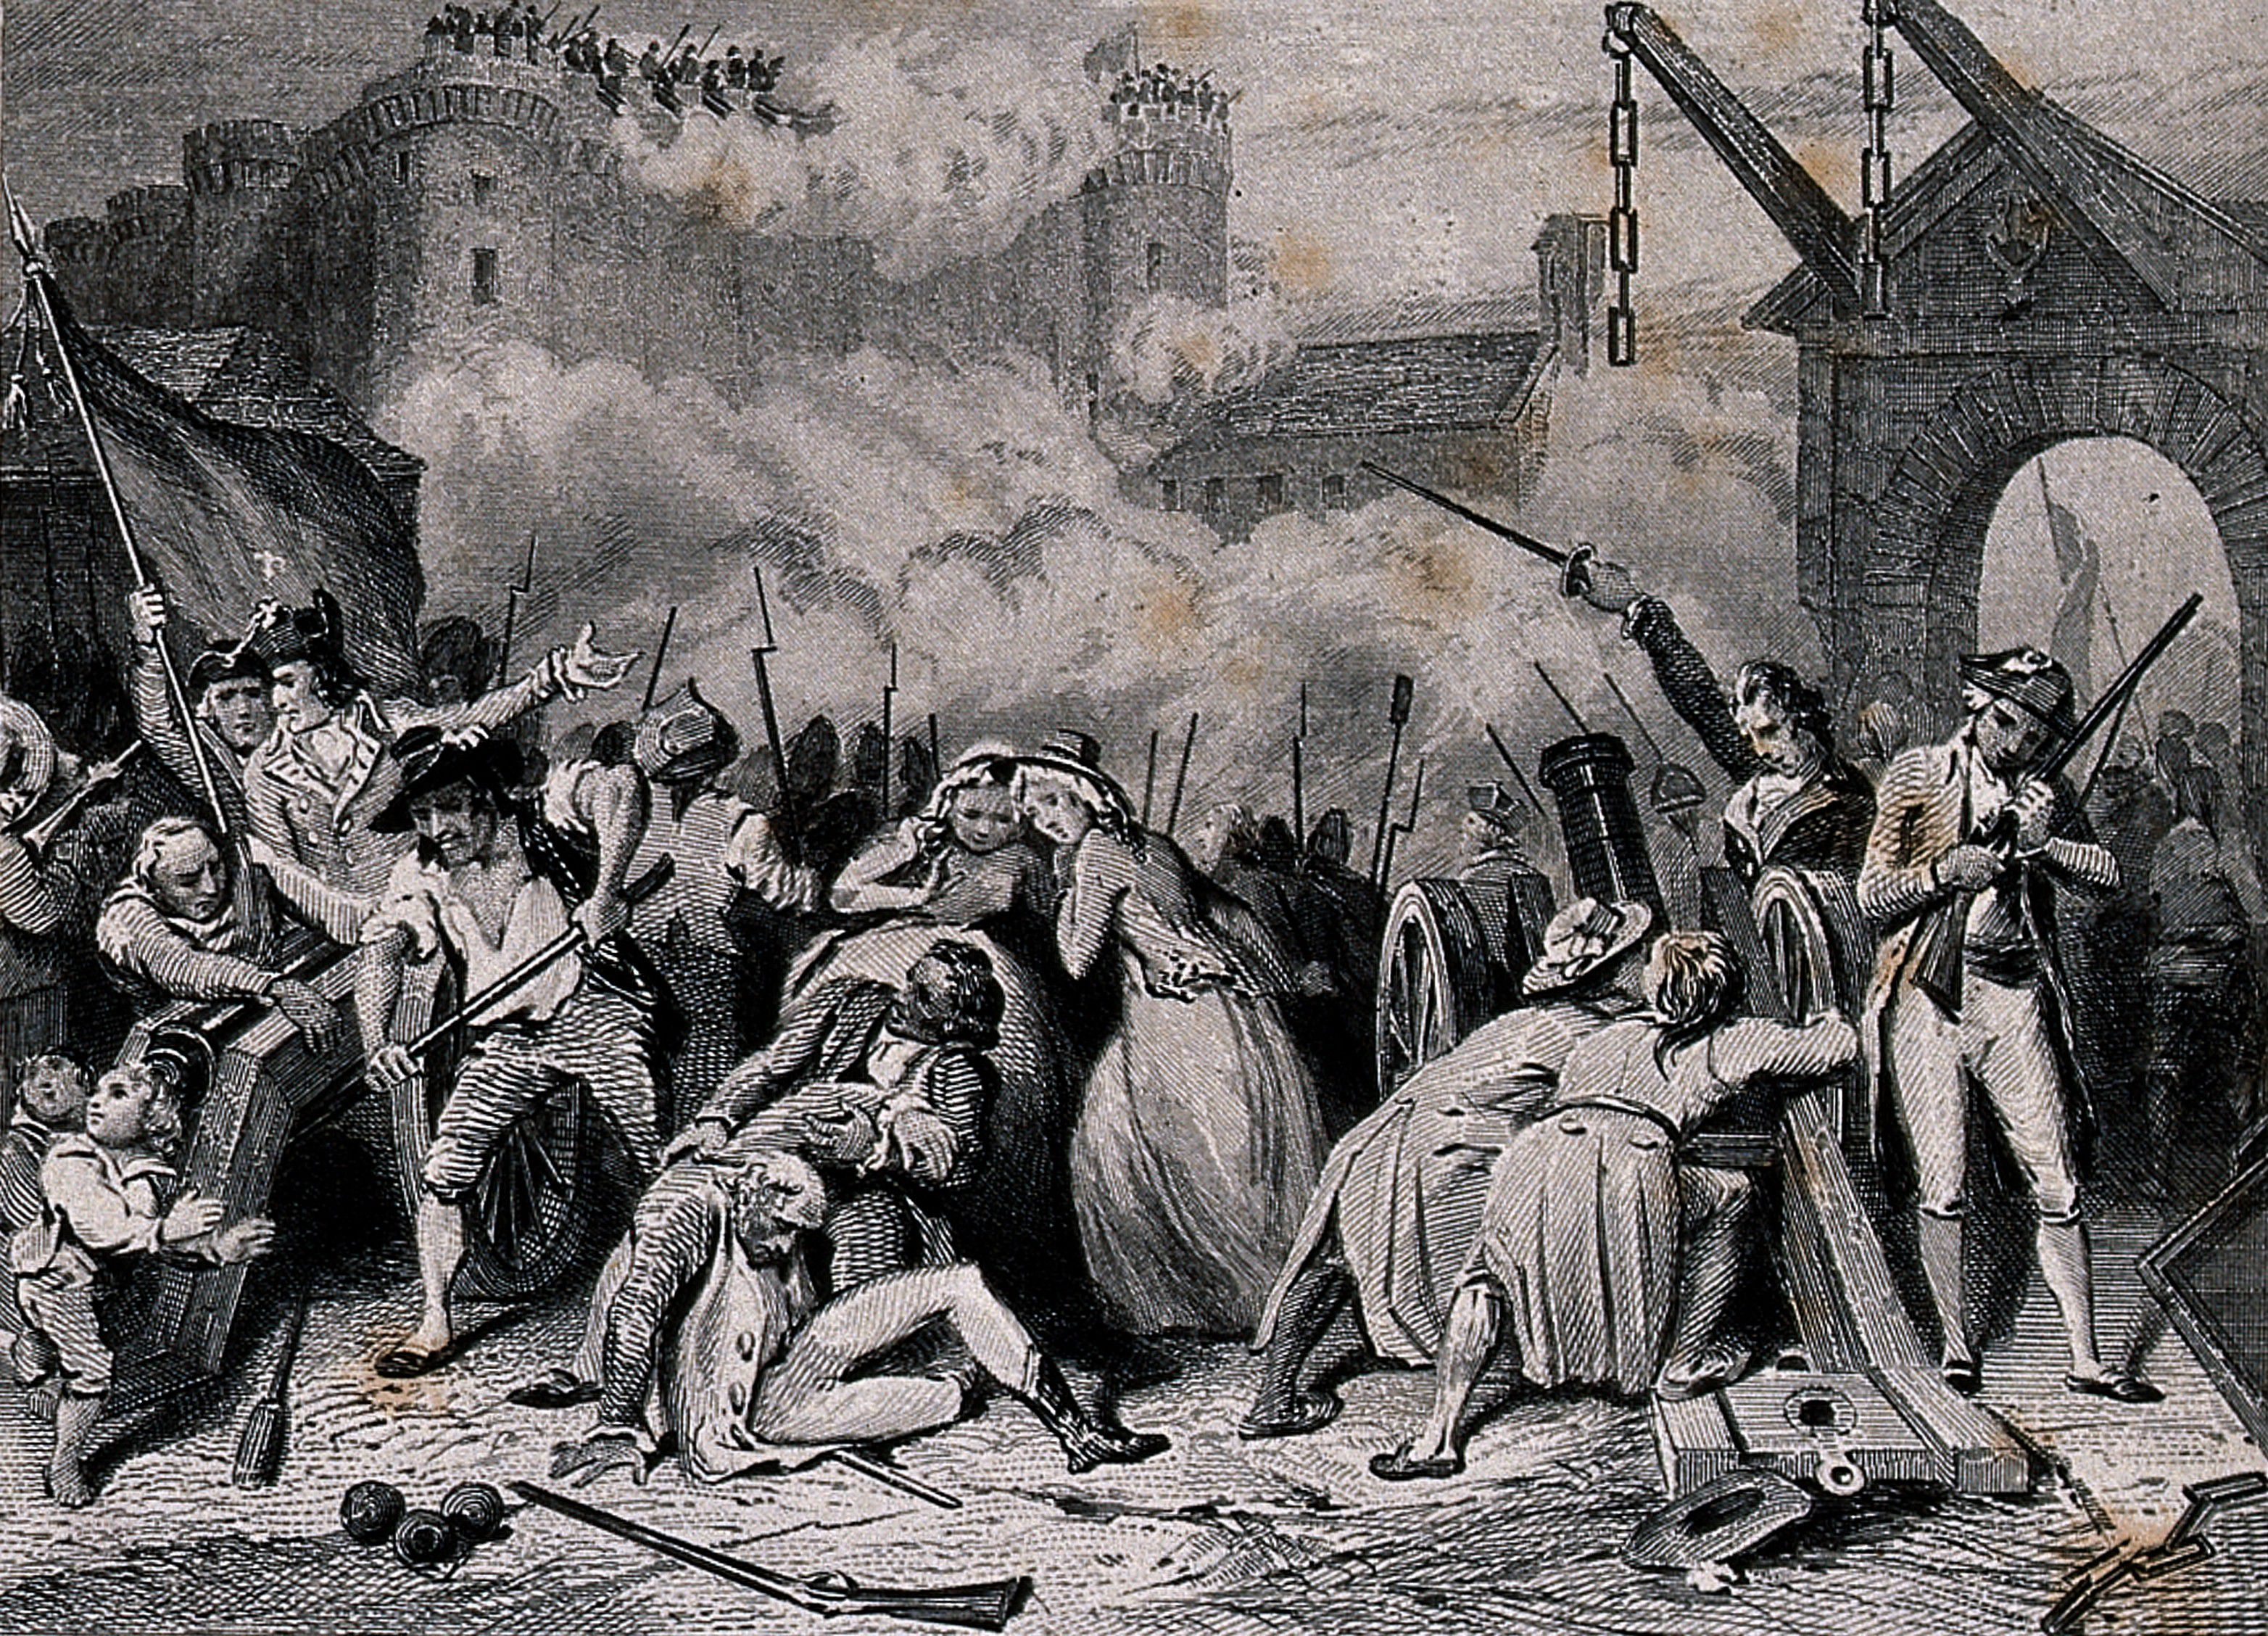 the bastille and the french revolution Simply put, the storming of the bastille was the start, the flashpoint, of the french  revolution, which lasted ten years from the storming on 14 july 1789 to 9.